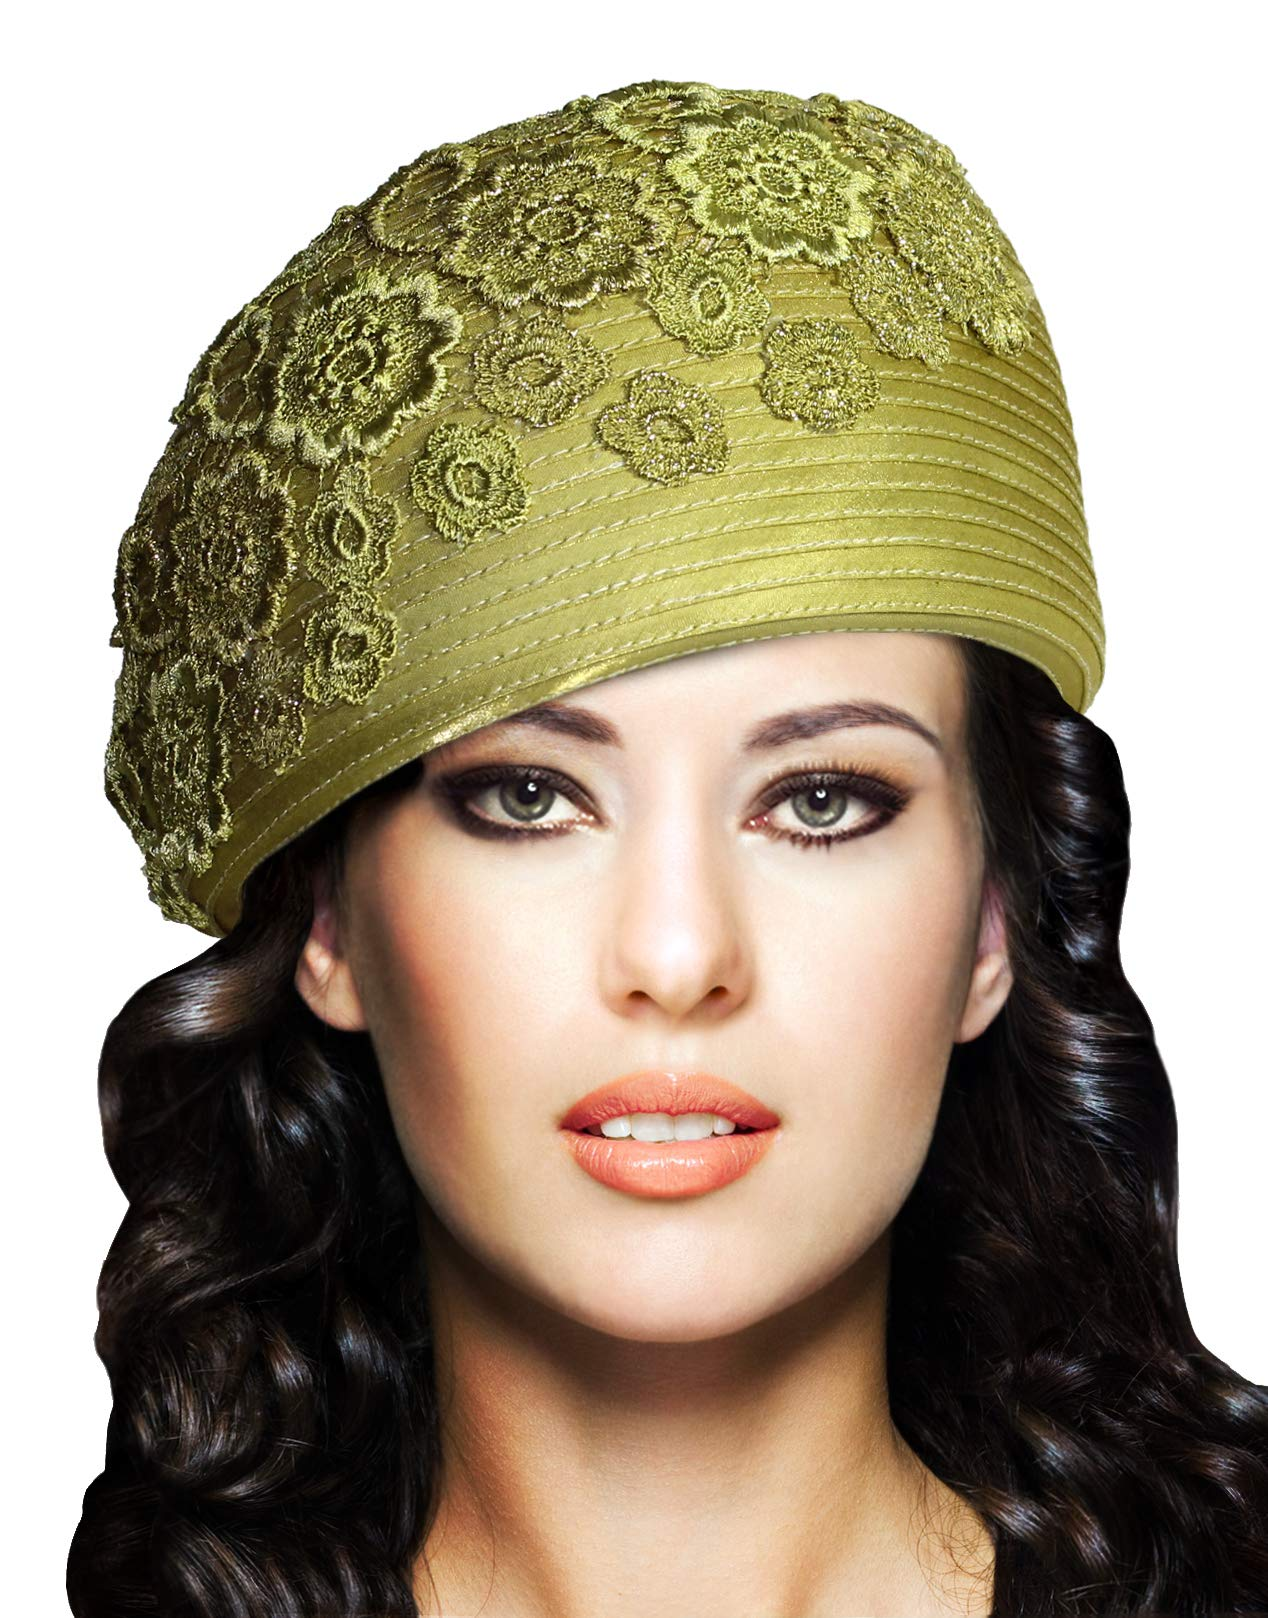 Mr. Song Millinery Beret Cloche Hat with Premium Lace - Q62 (Celery)